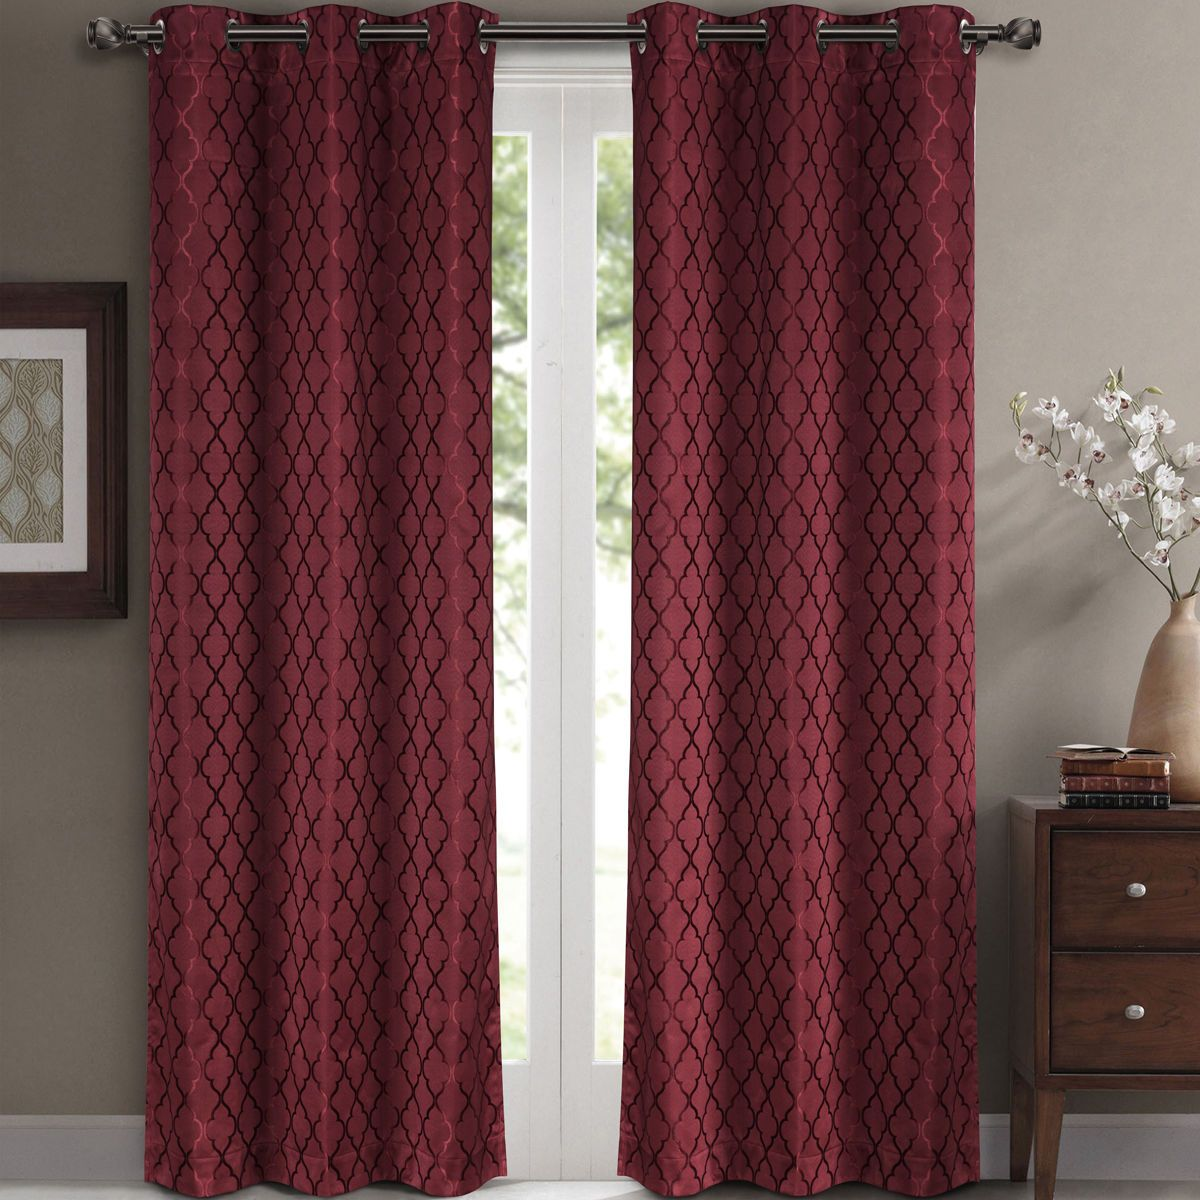 Home gt curtains collection gt modern curtains gt elegant pink un - Pair Of Two Top Grommet Blackout Jacquard Curtain Panels Triple Pass Foam Back Layer Elegant And Contemporary Willow Blackout Panels Charcoal